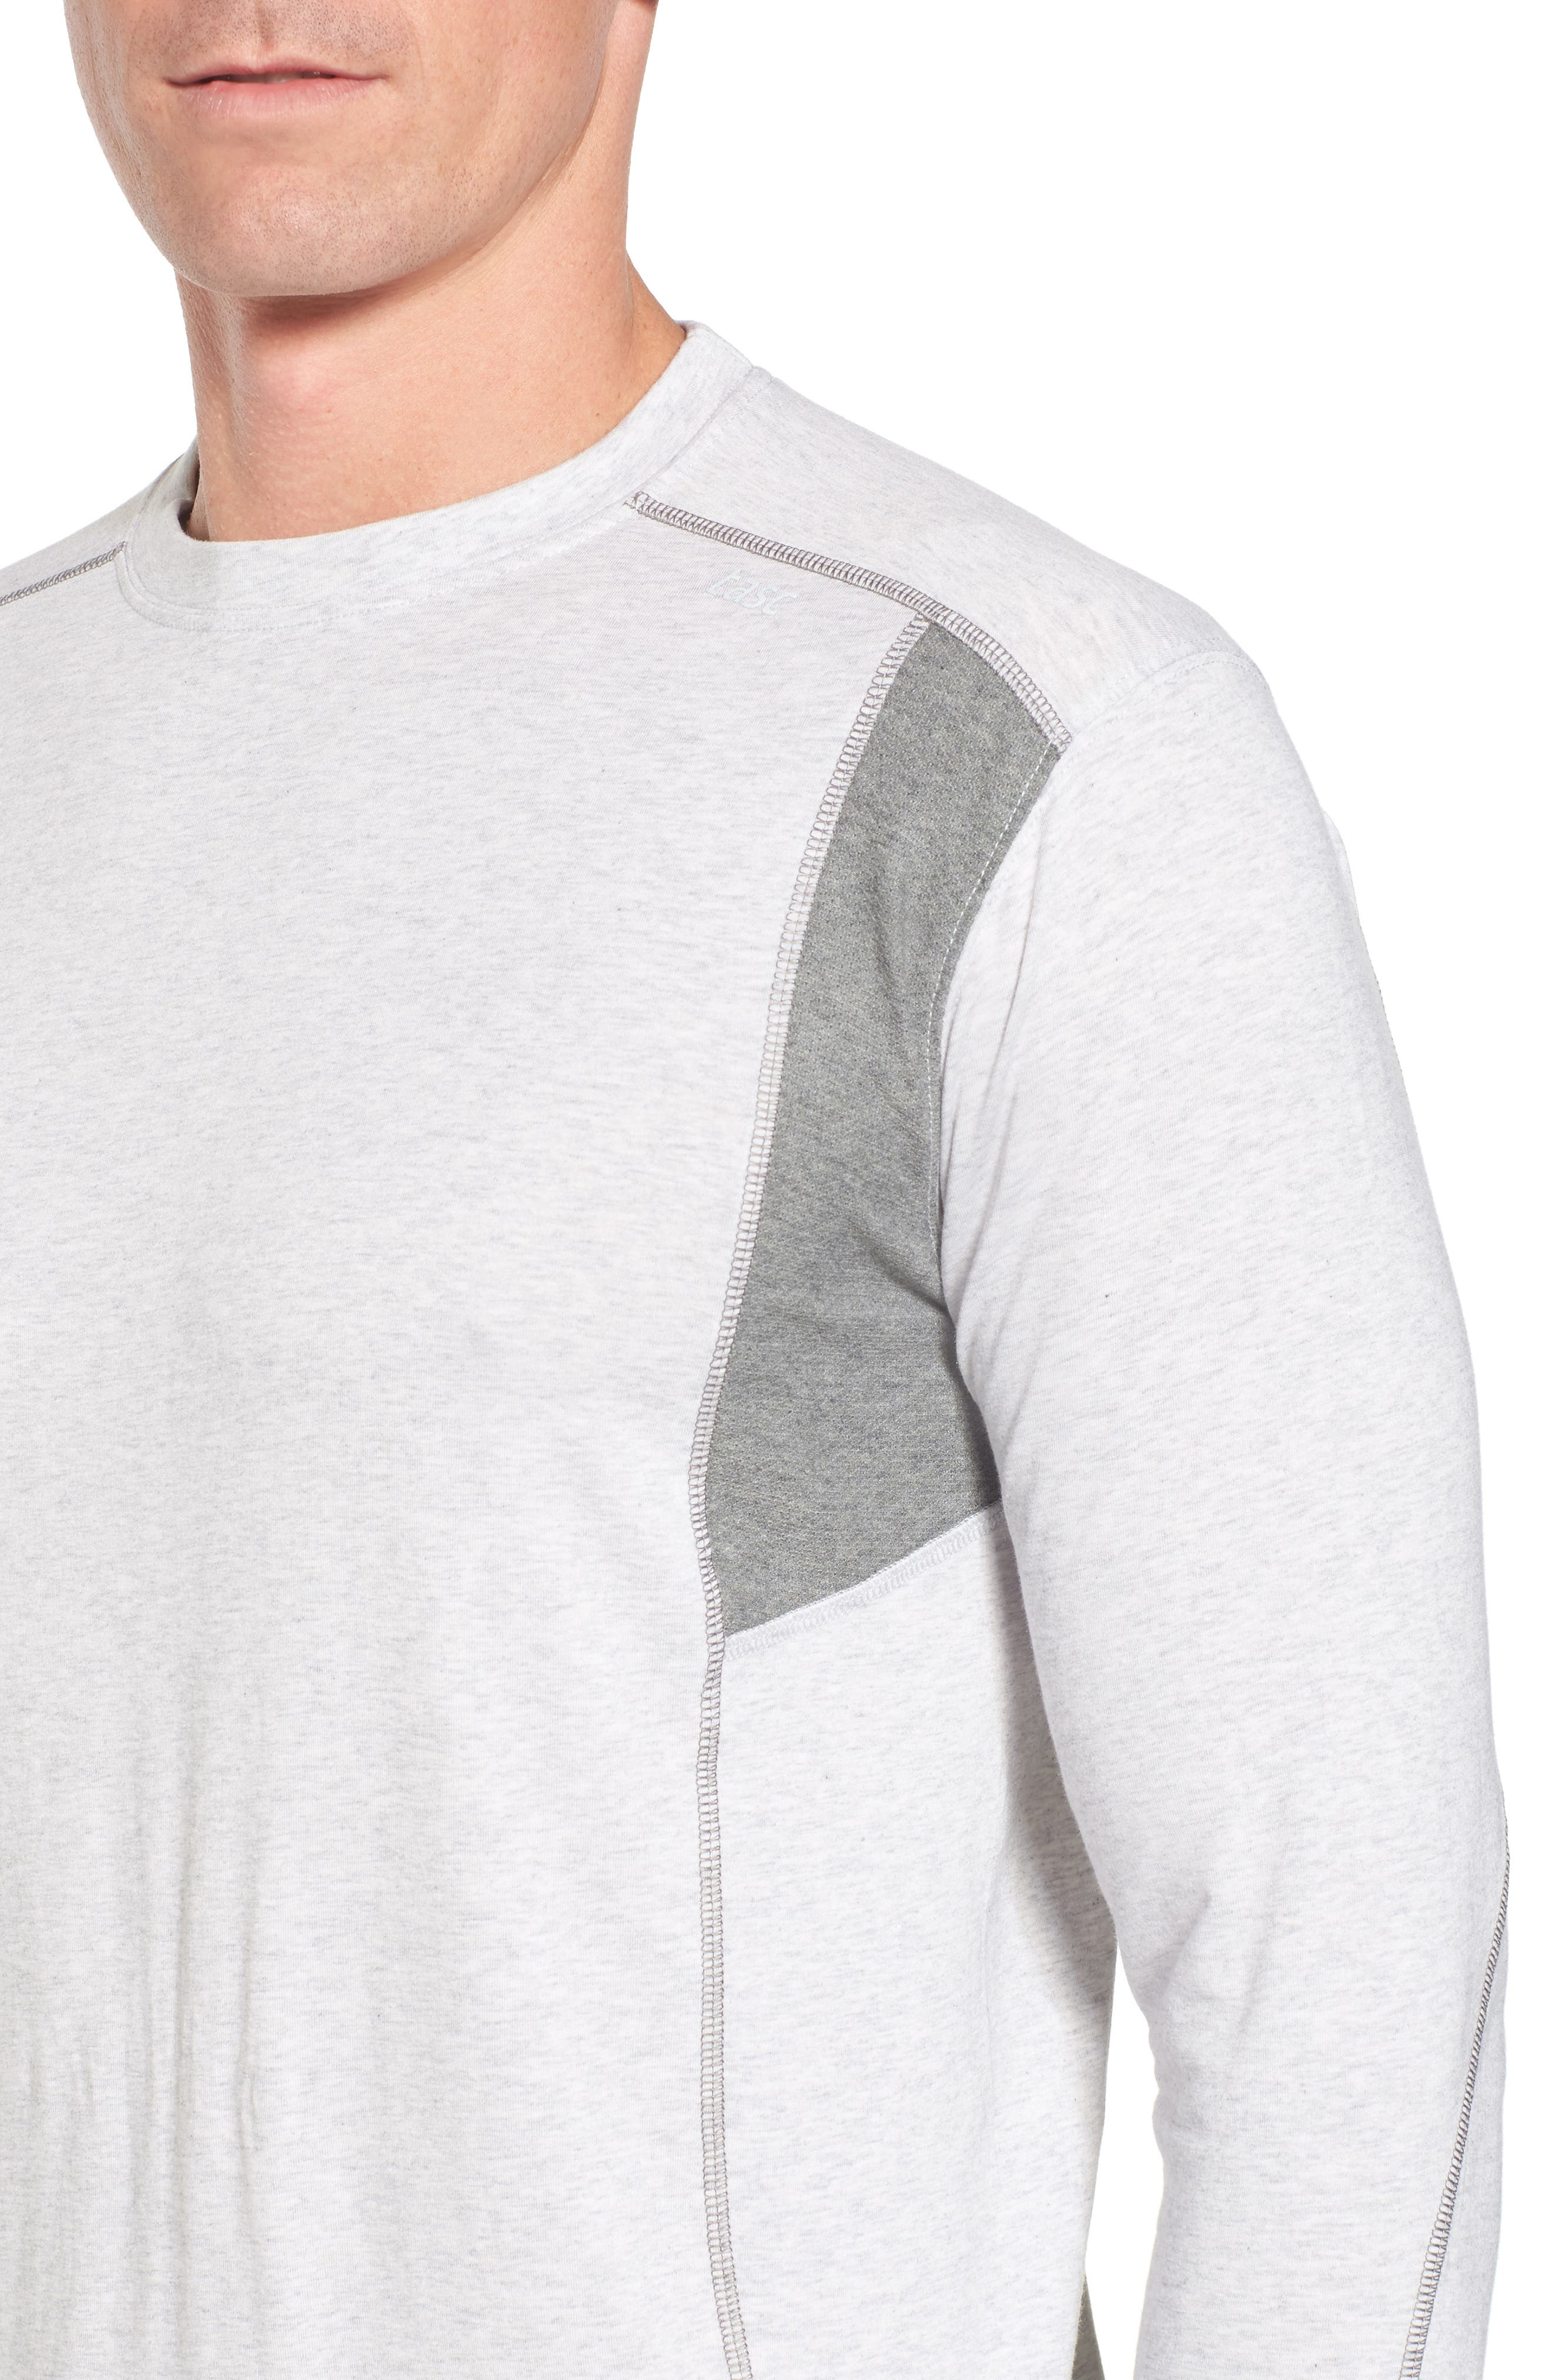 Charge Sweatshirt,                             Alternate thumbnail 4, color,                             067